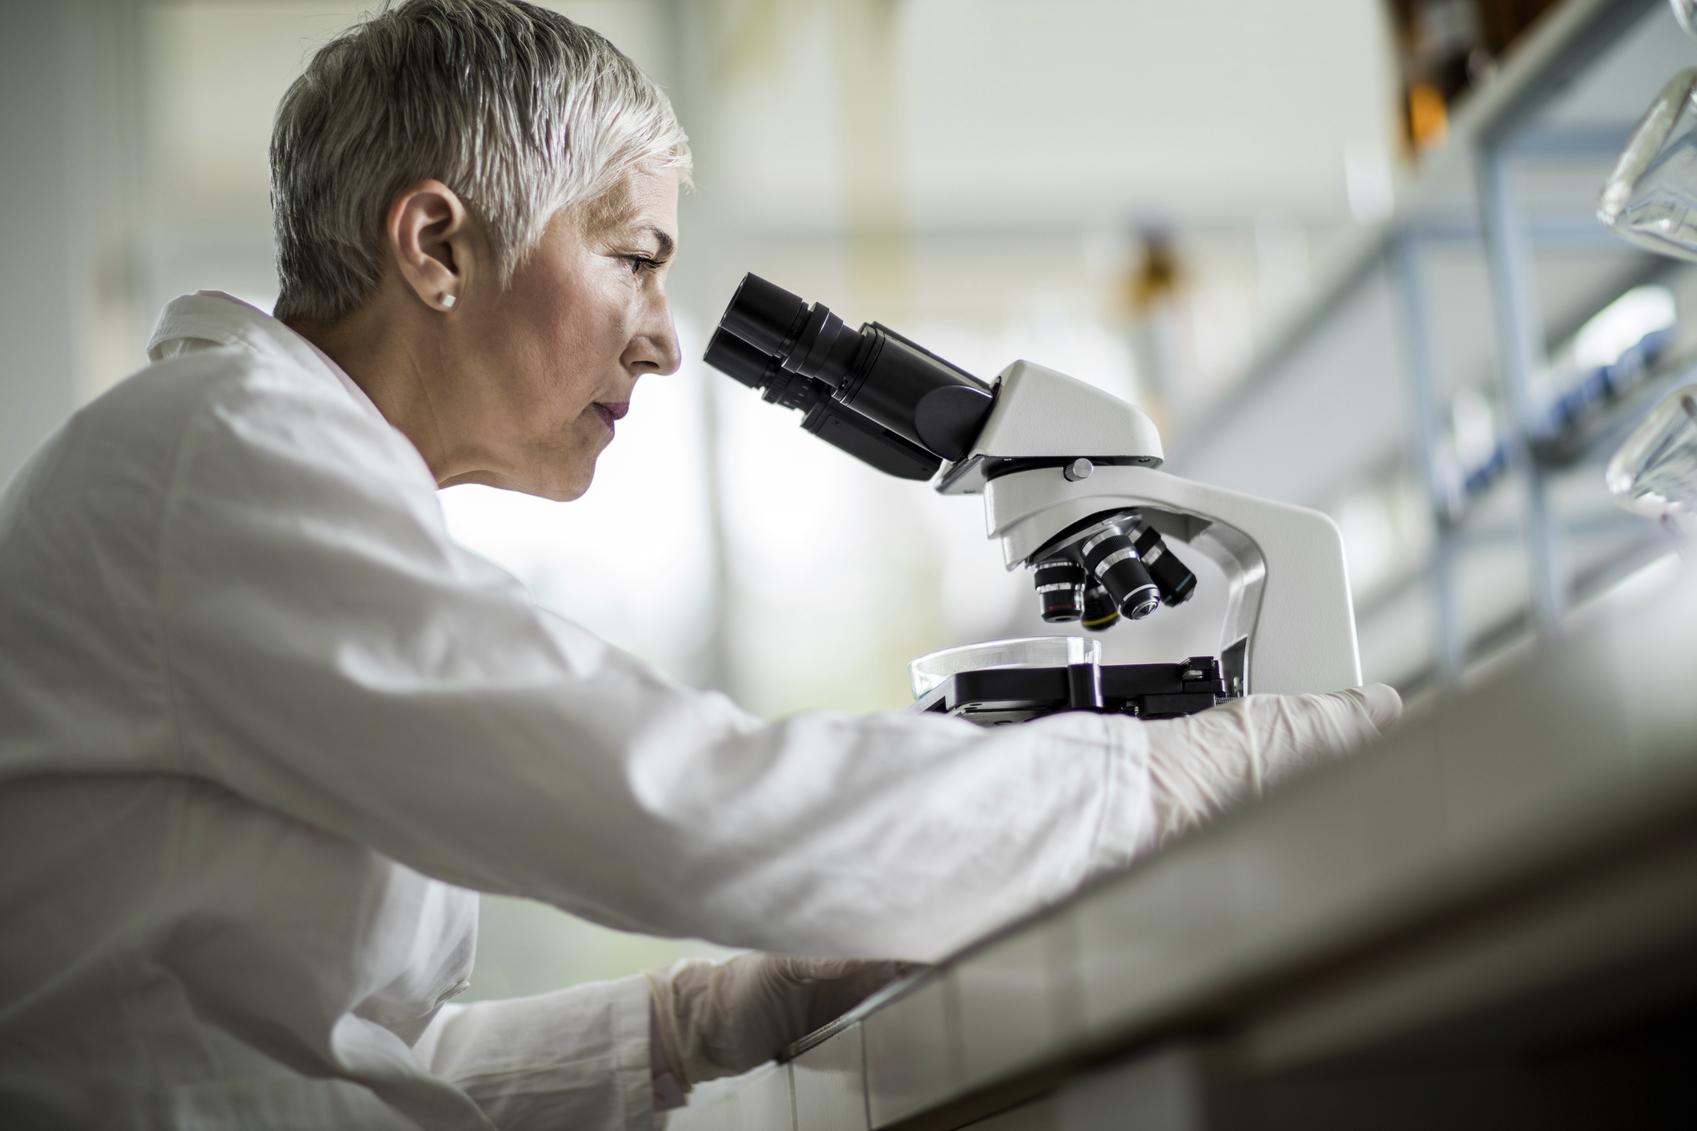 Low angle view of a mature scientist looking through a microscope in a laboratory.